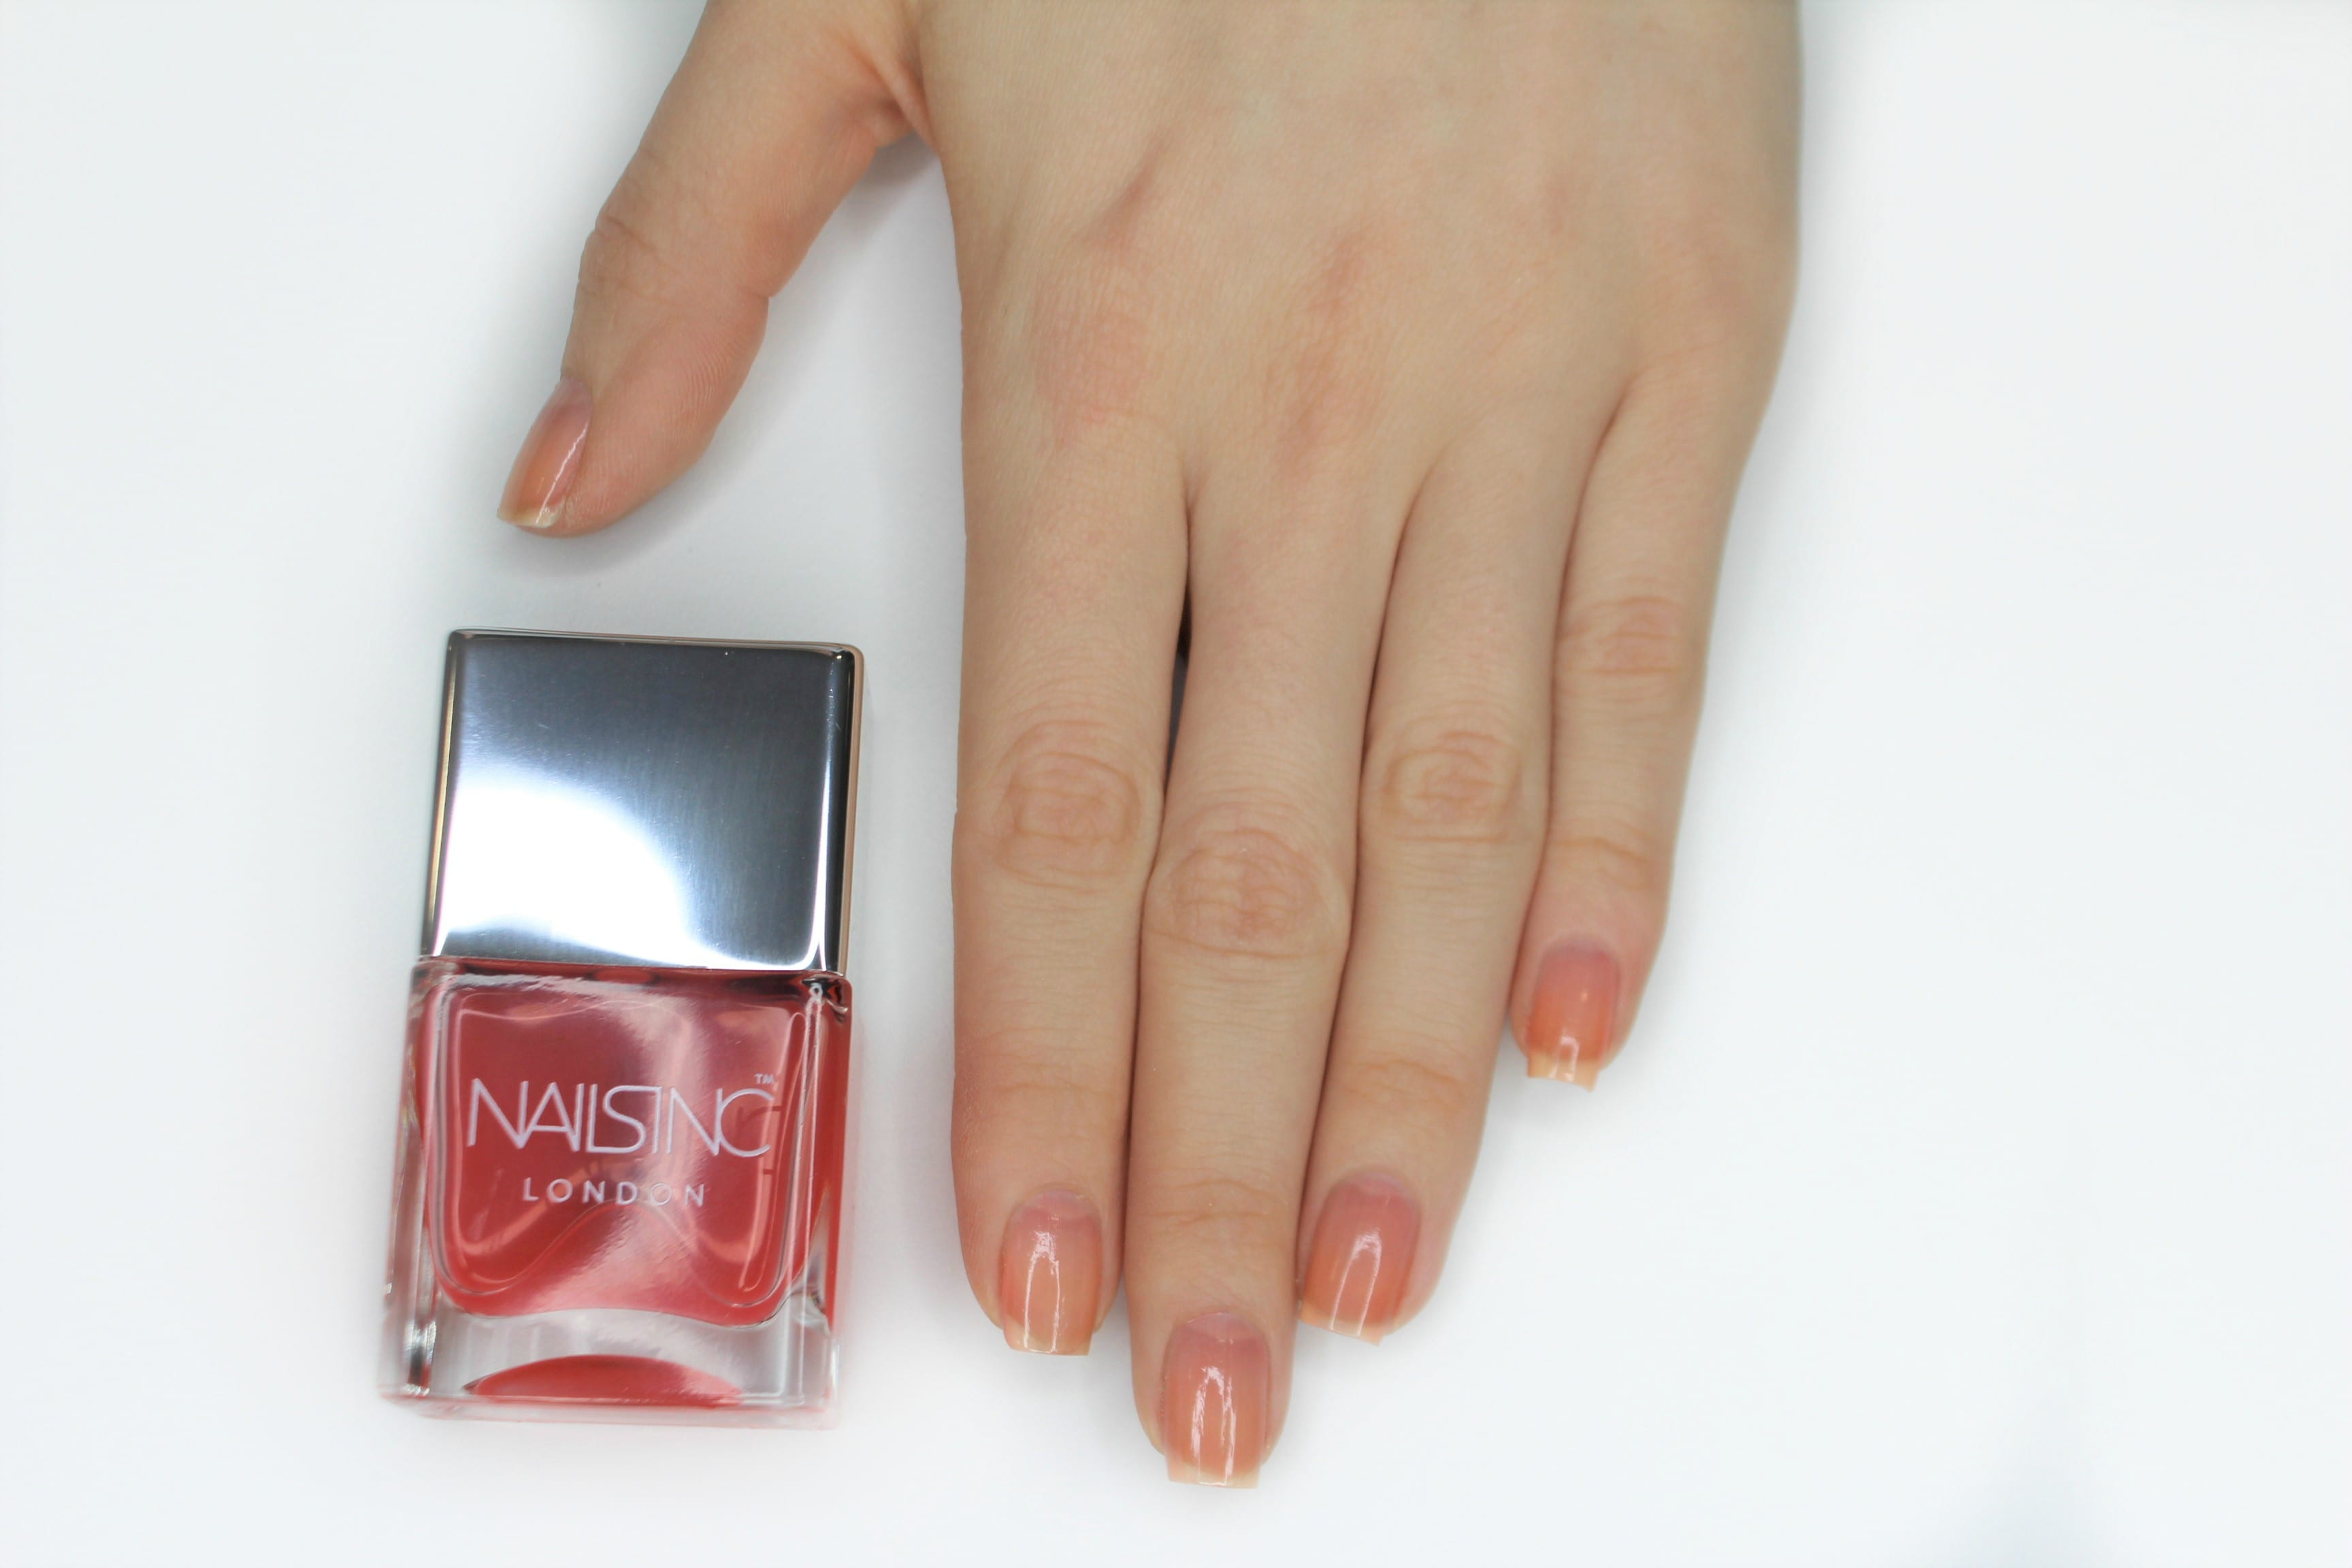 Nails Inc's Kensington Caviar Base Coat